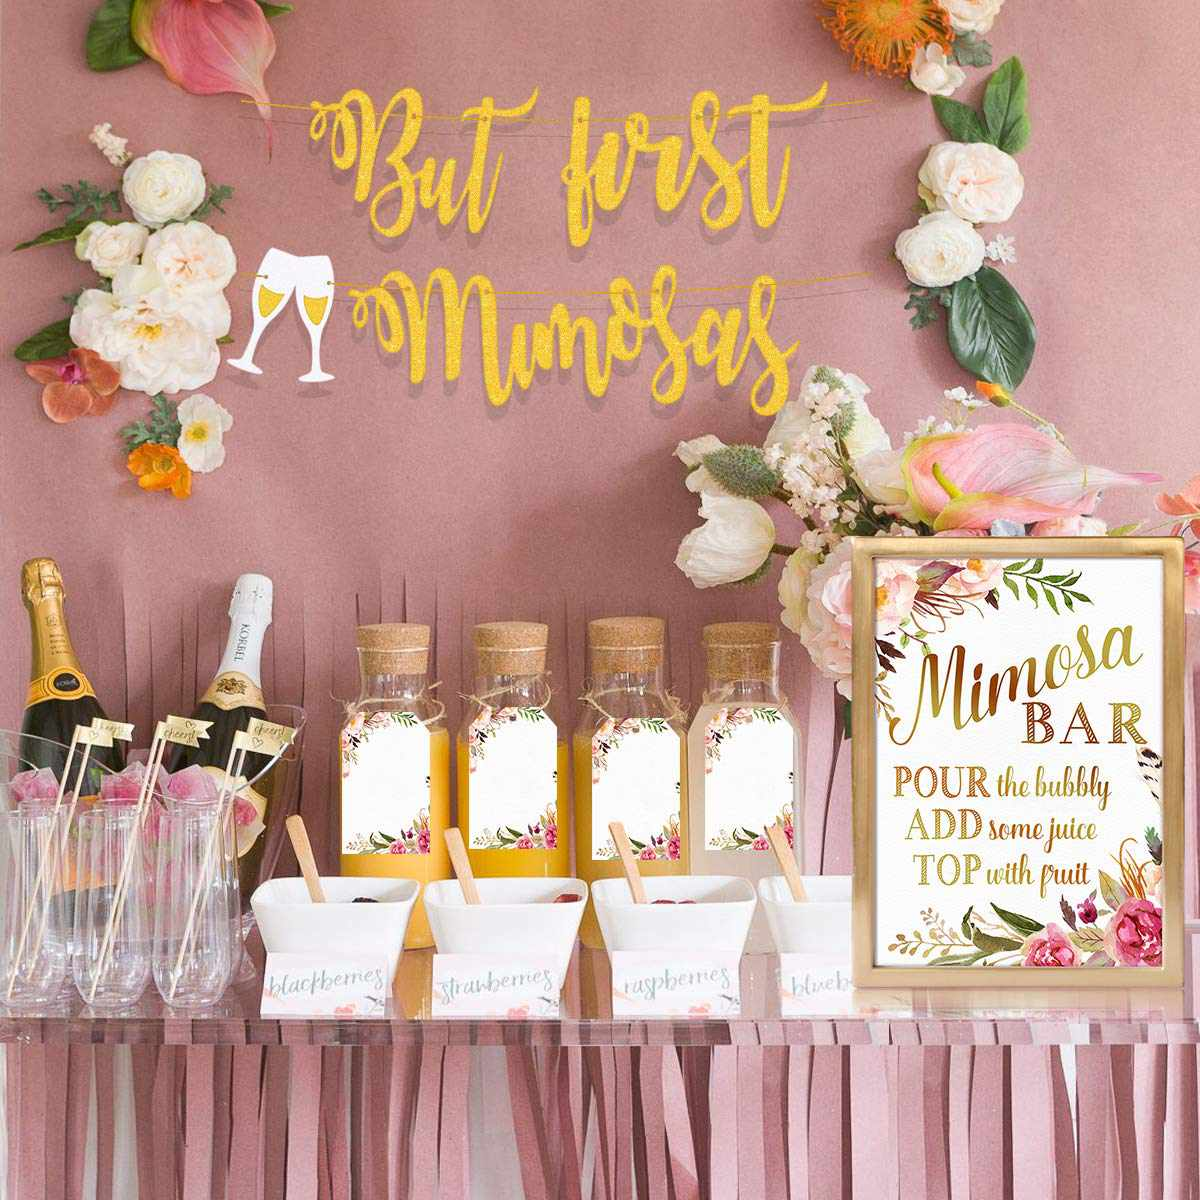 Cute Wedding Decoration Ideas: 25 Pretty (And Affordable) Bridal Shower Decorations To